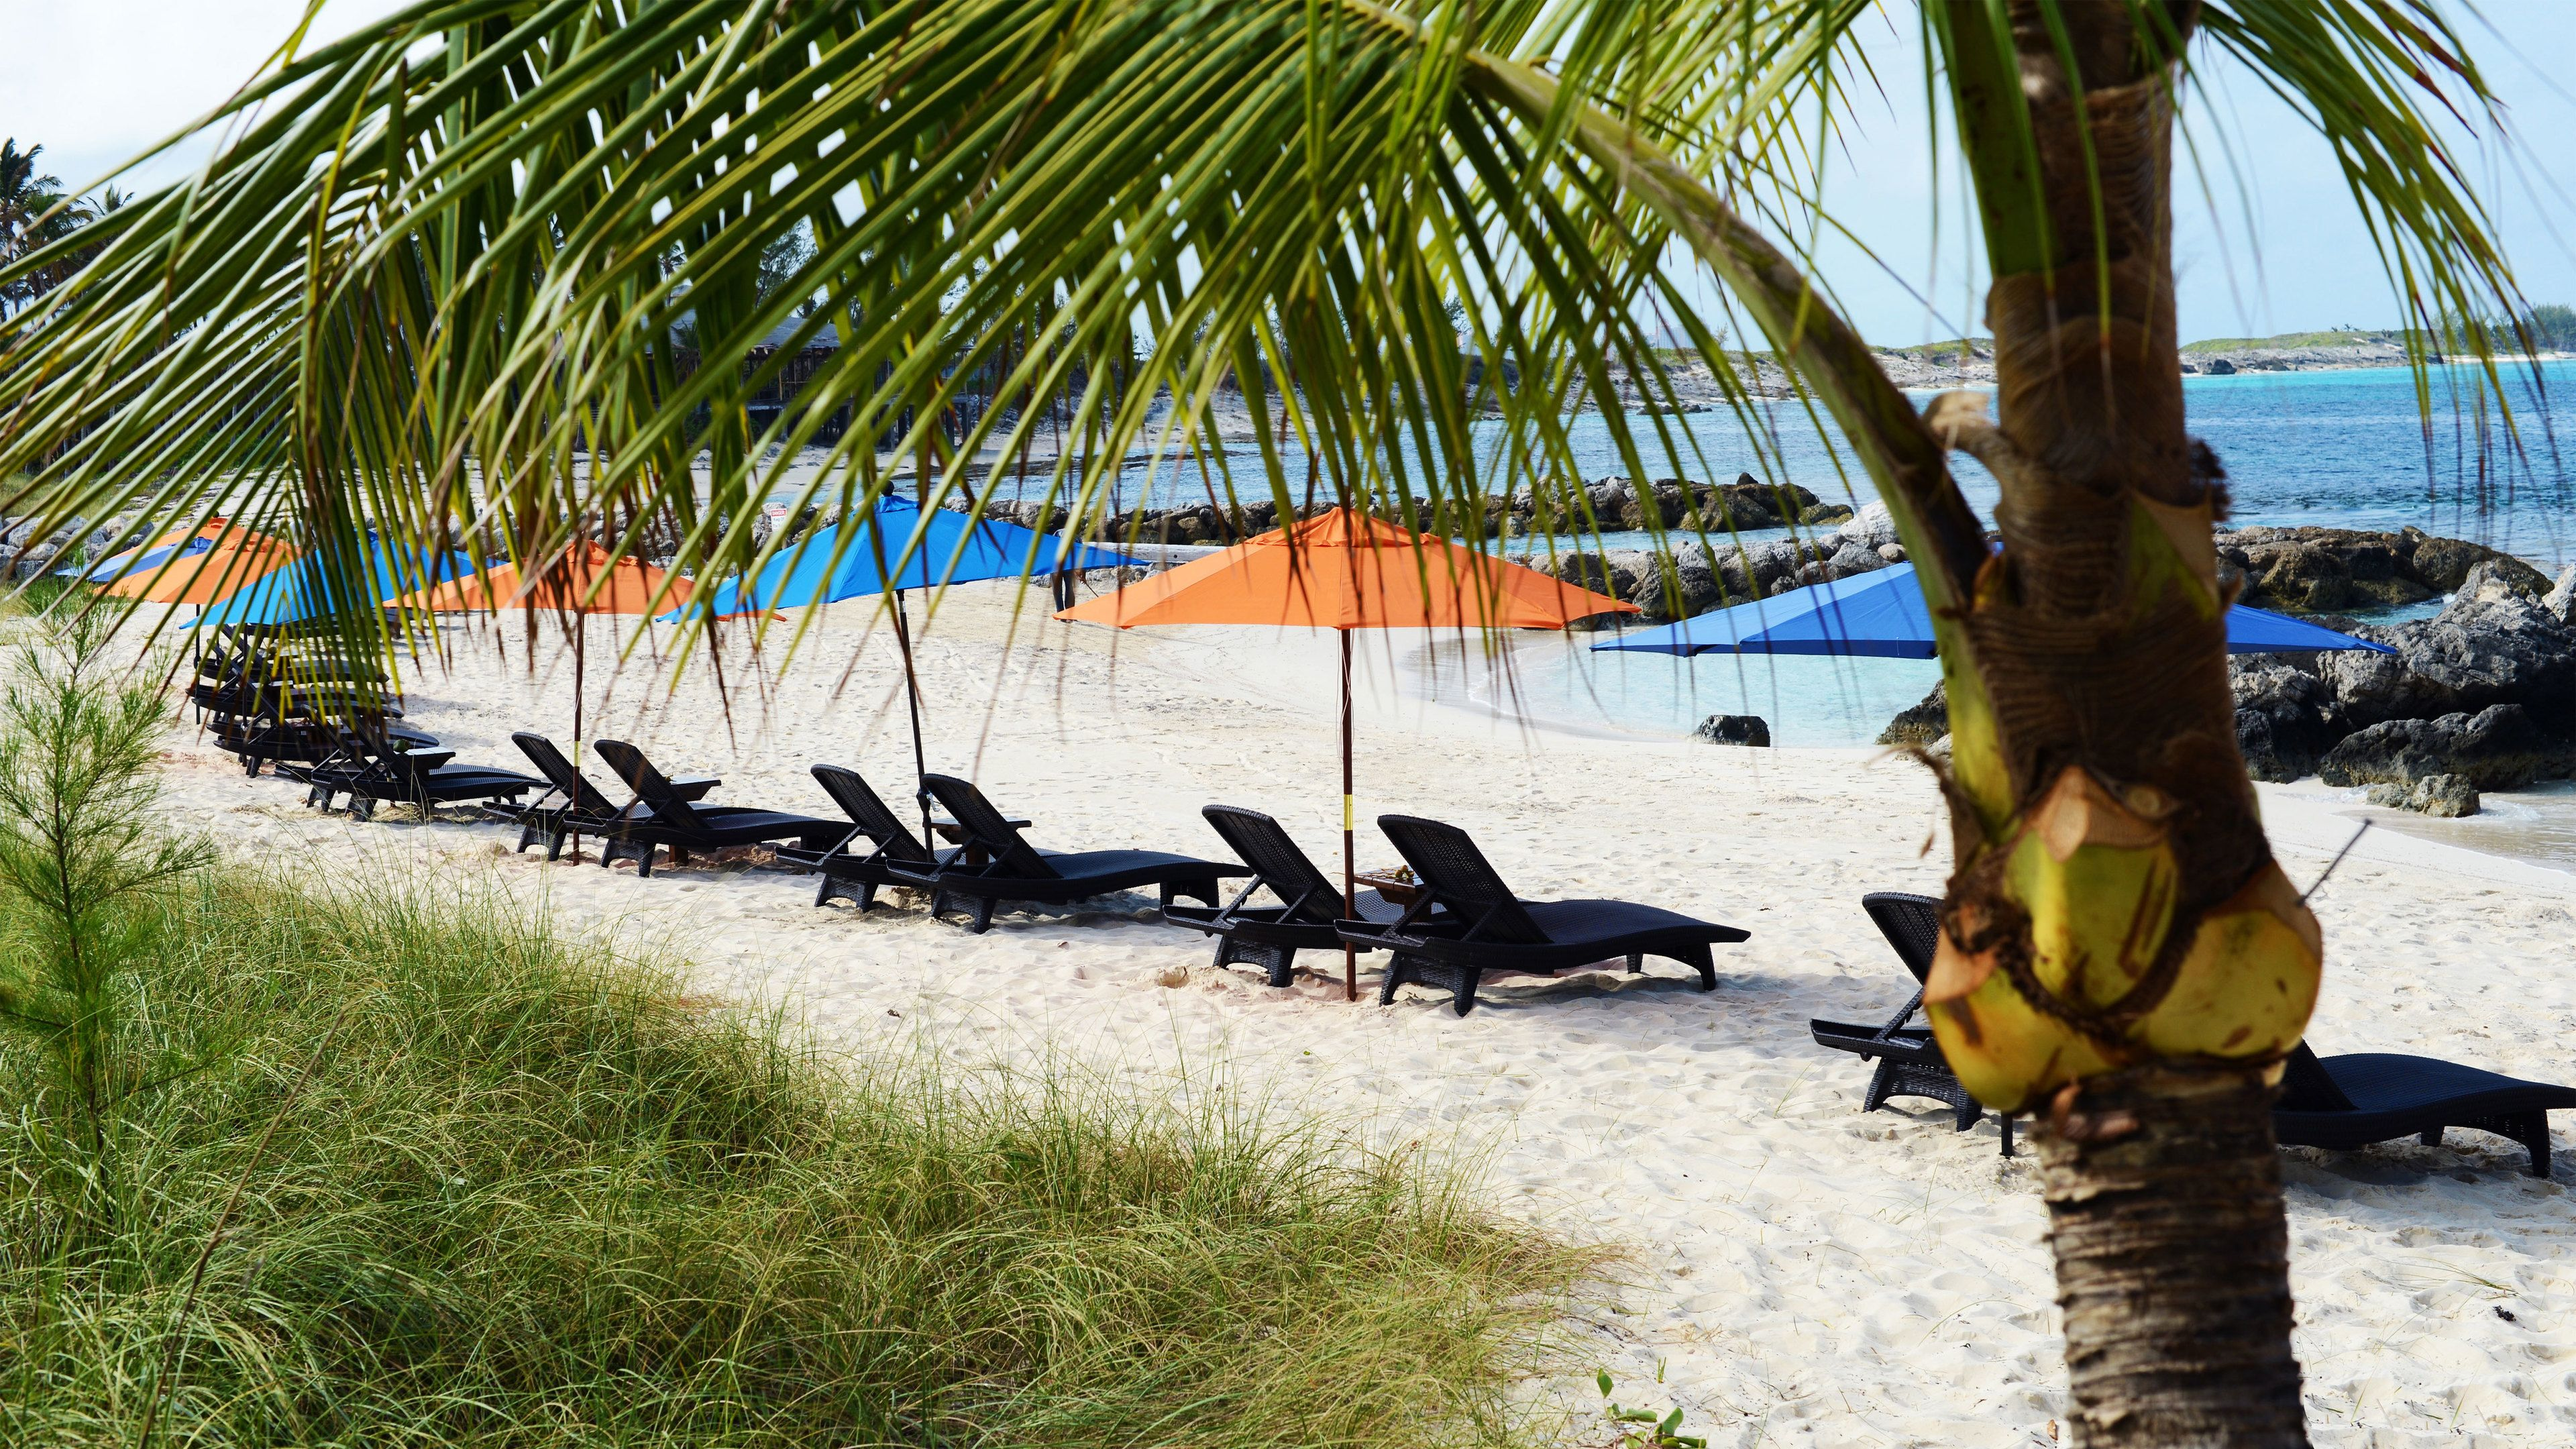 Row of chaise lounges and umbrella on a beach in Grand Bahamas